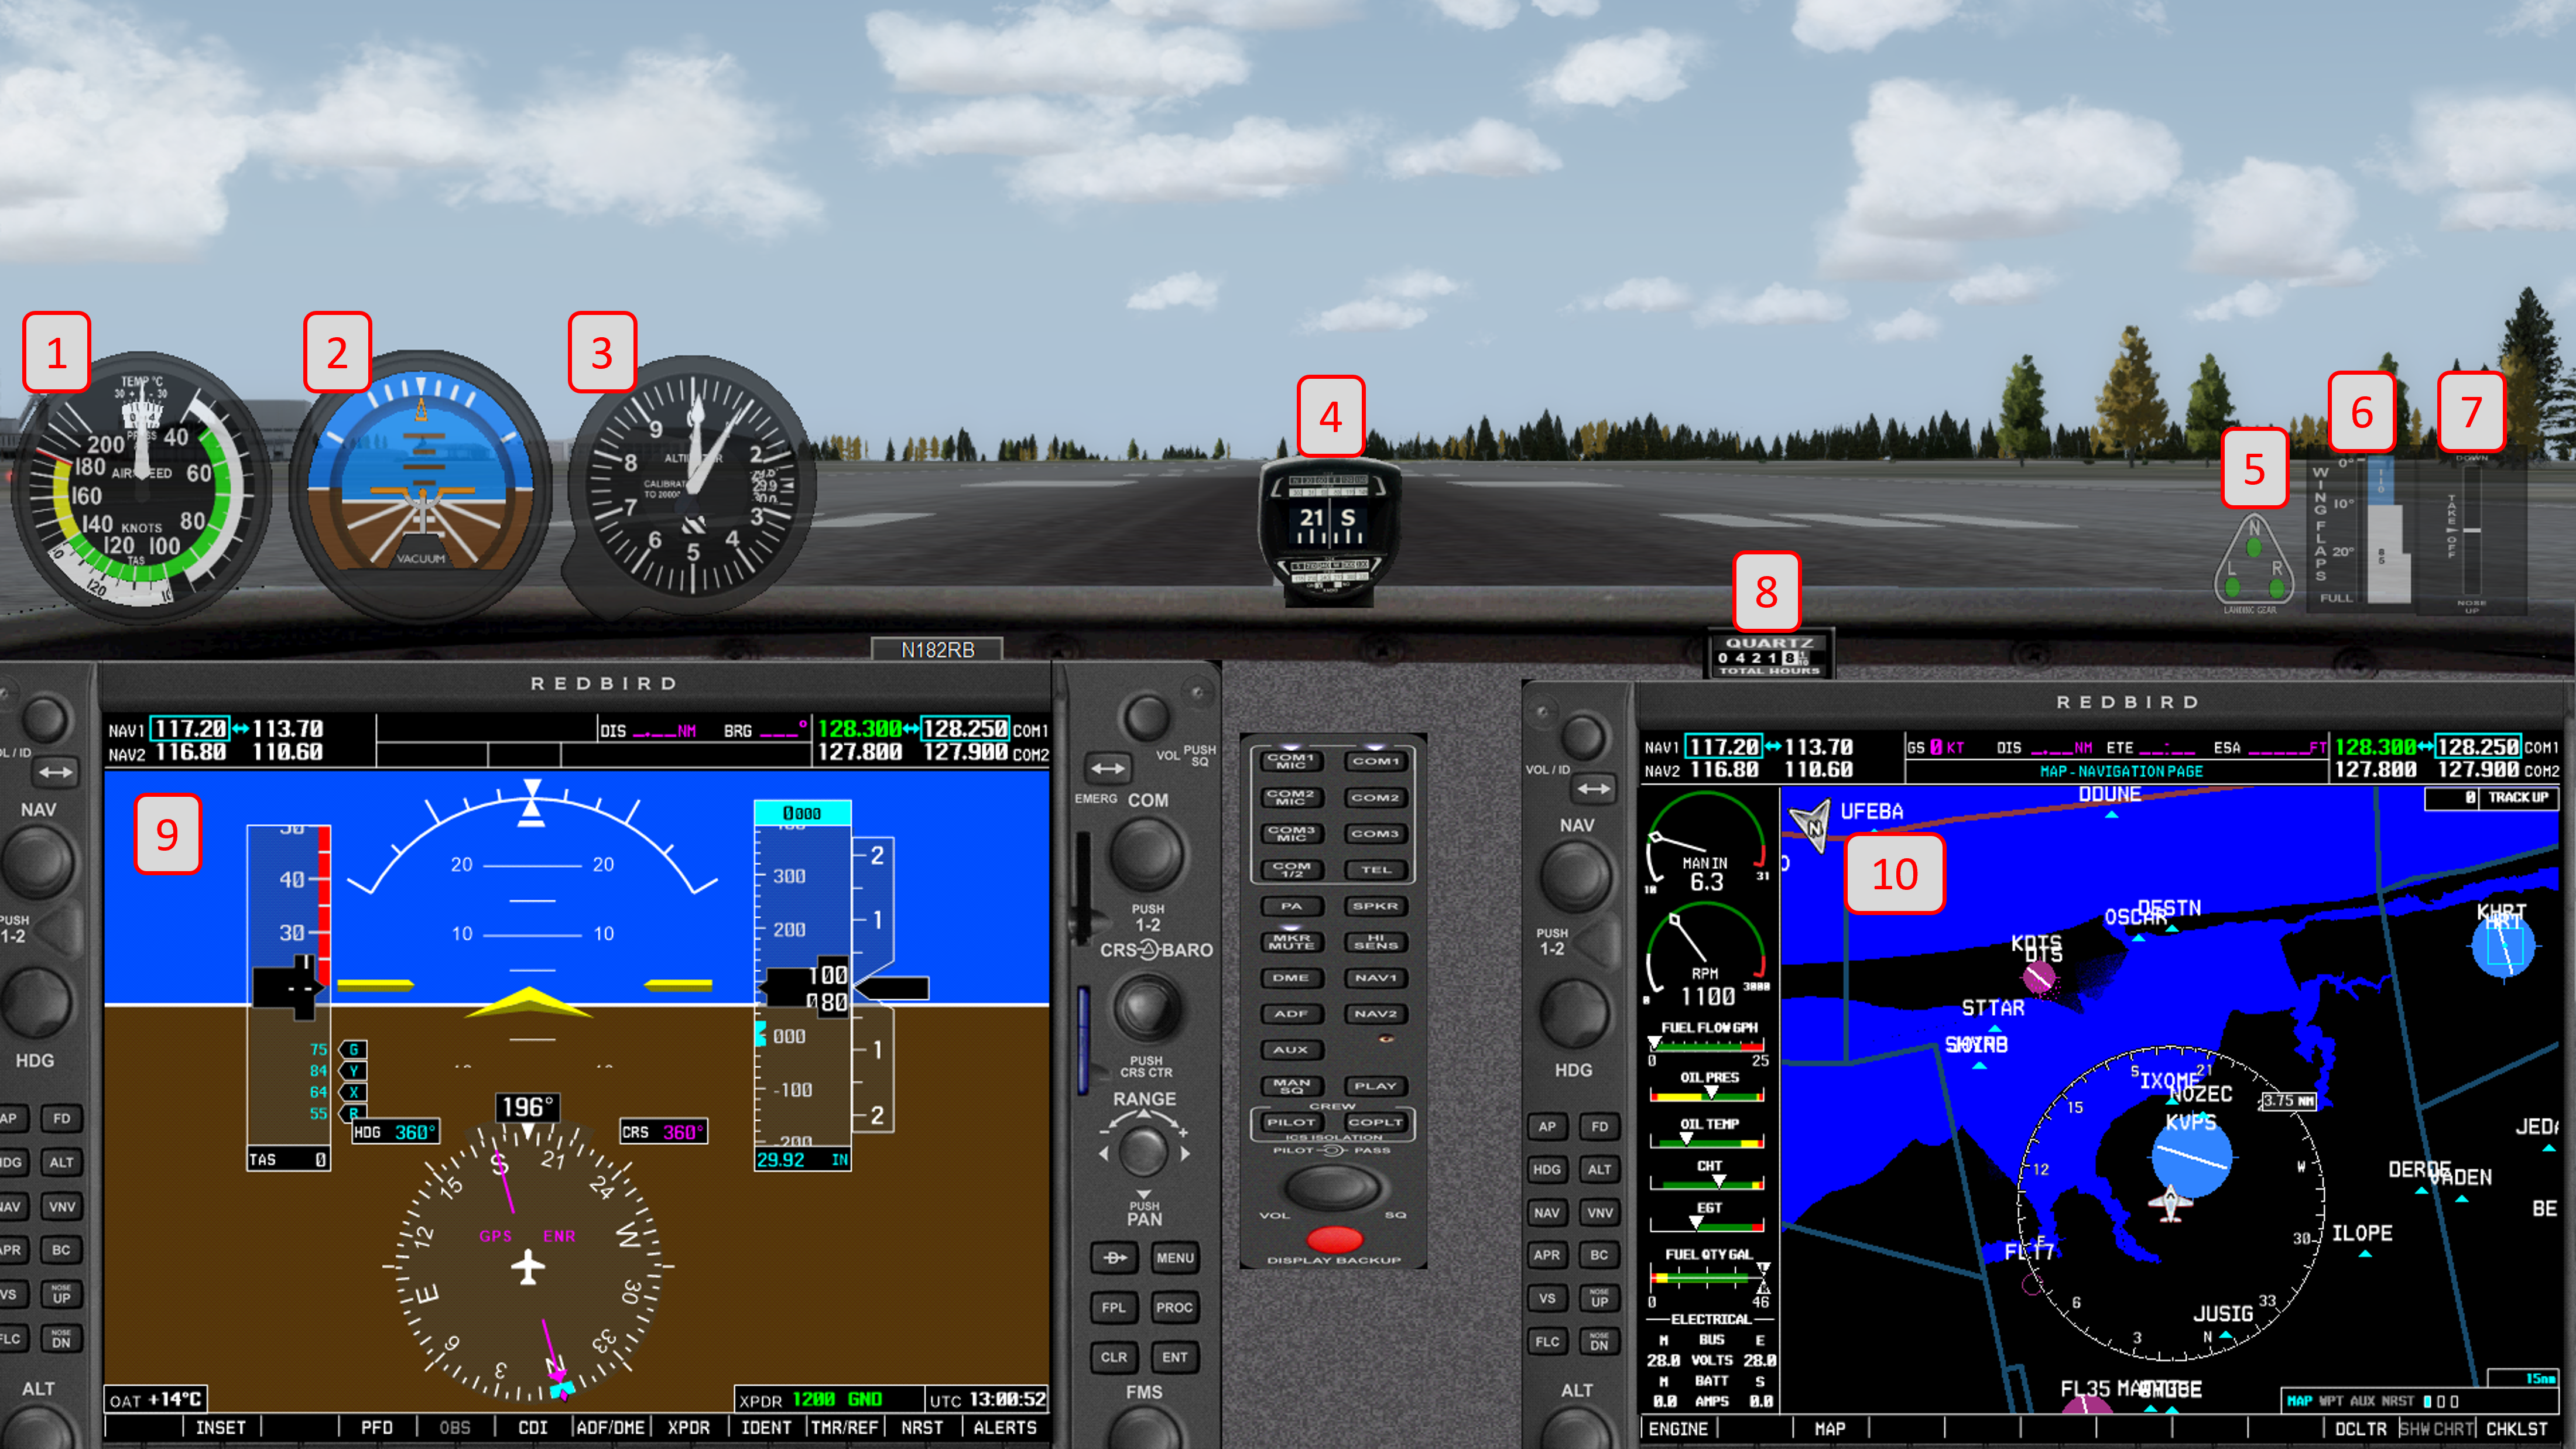 Redbird TD G1000 configuration, with number labels on each gauge/component